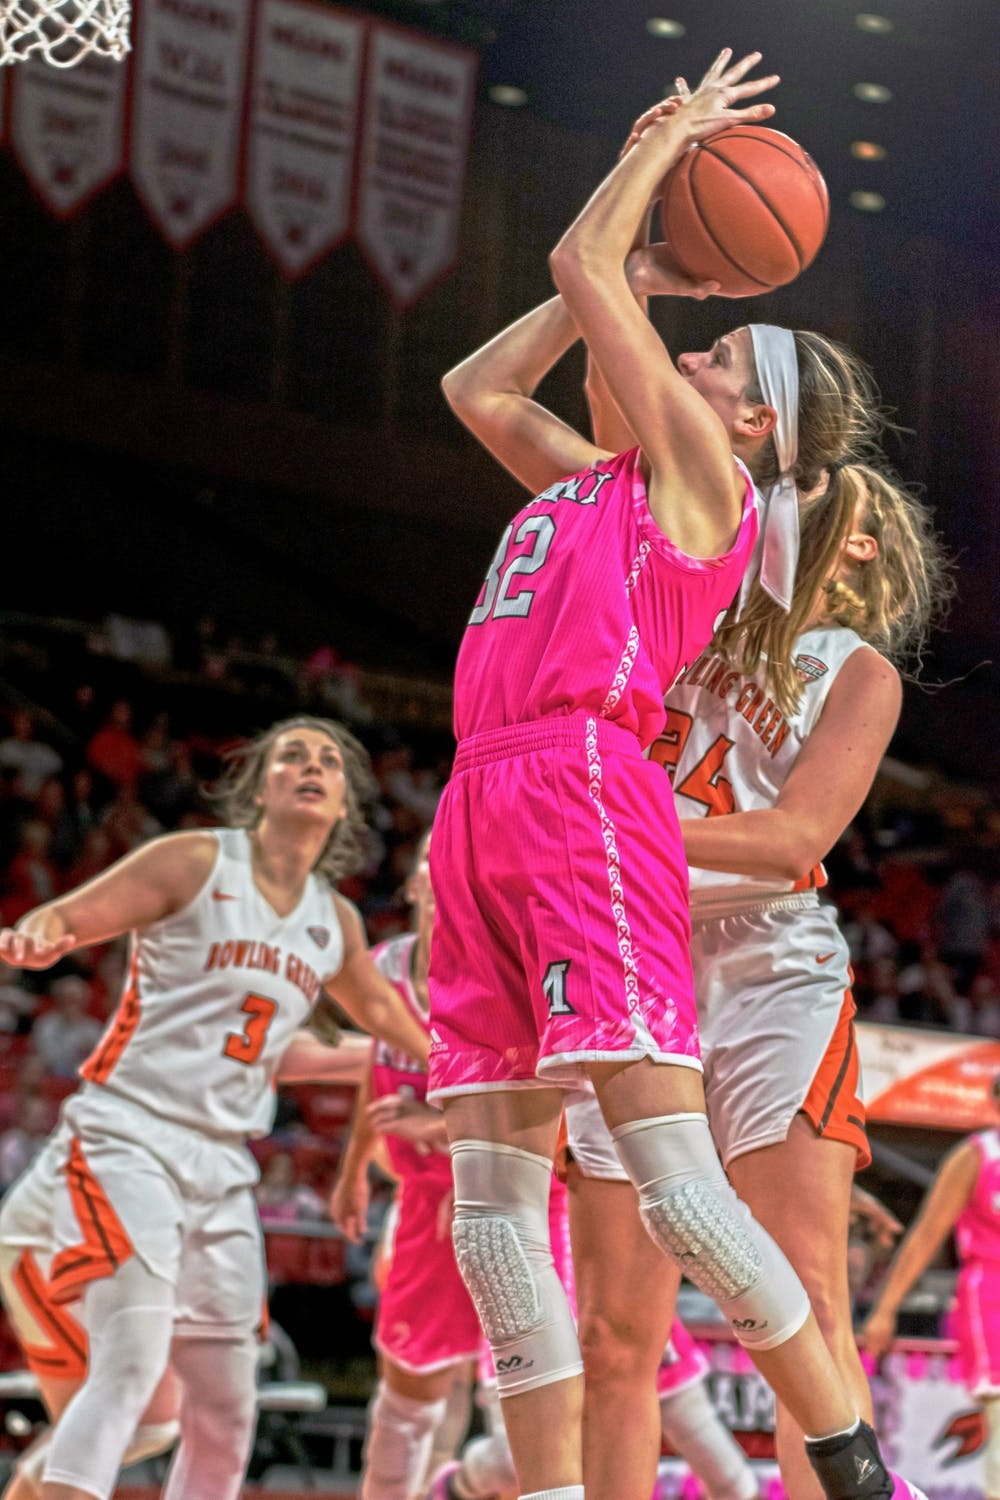 <p>Savannah Kluesner attempts a layup during Miami&#x27;s 75-62 victory over the Bowling Green Falcons Feb. 23, 2019, at Millett Hall. Kluesner posted an 11-point, 14-rebound double-double.</p>